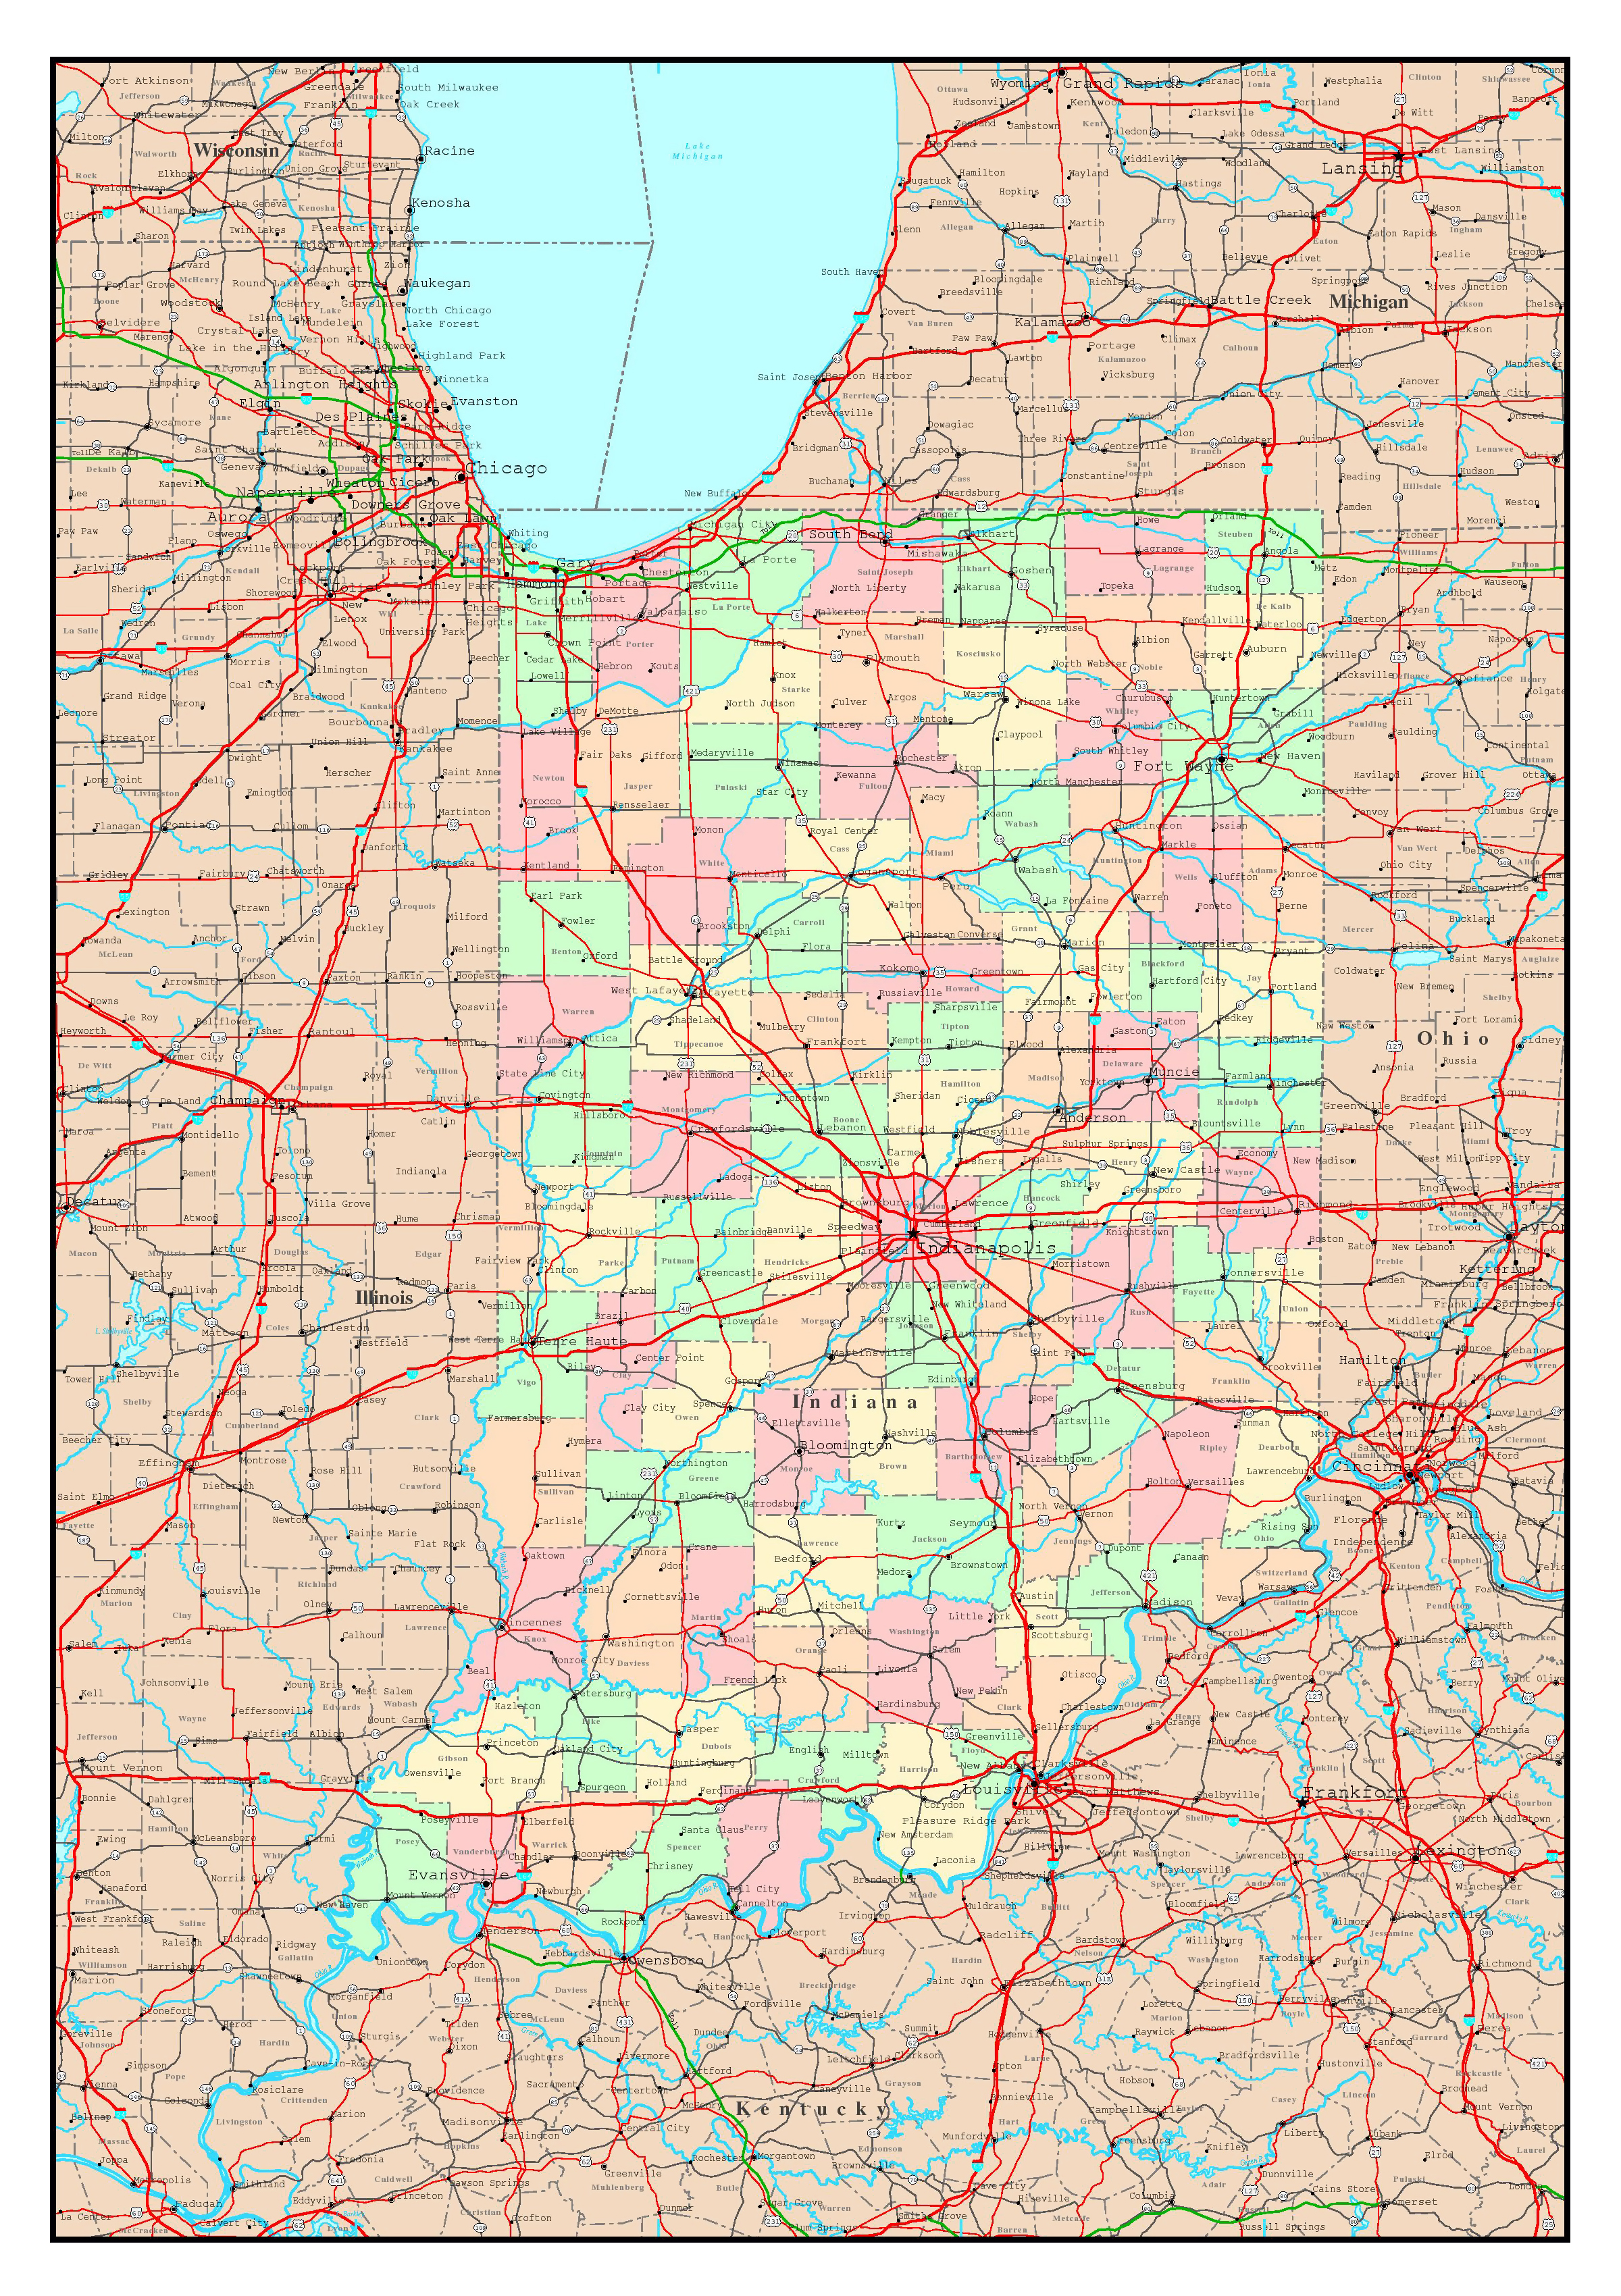 Large Detailed Administrative Map Of Indiana State With Roads - Map of state of indiana